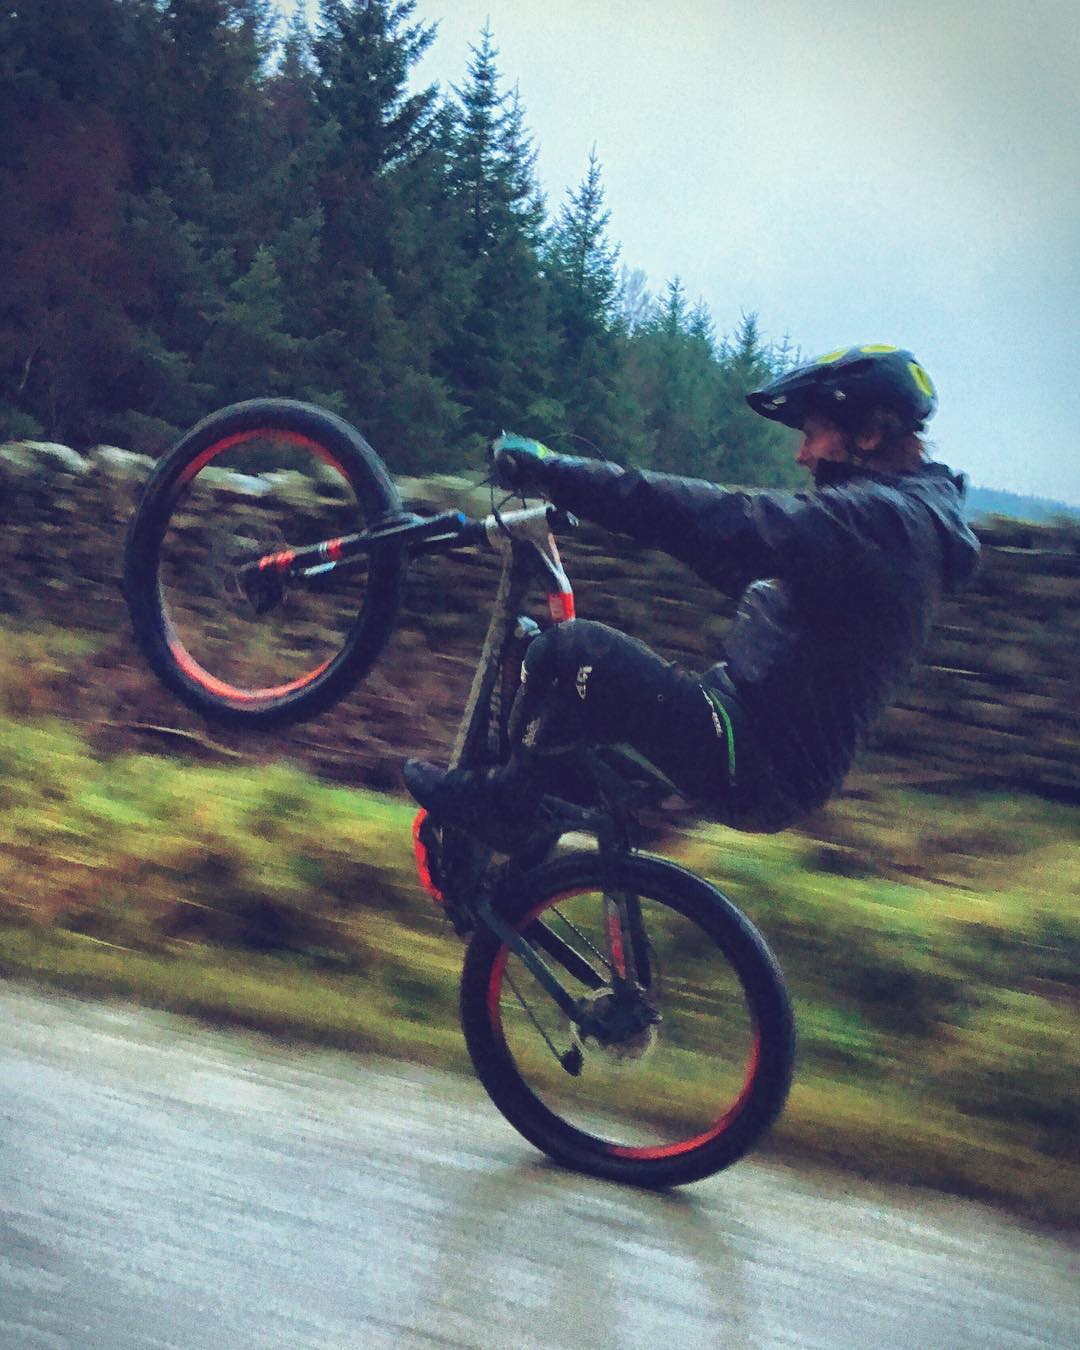 Some #wheeliewednesday action from the Green lanes of the UK with @paulboltsenduro and @haibikeuk 📷 @hdc_m #haibike #emtb #xduro #mtb #enduro